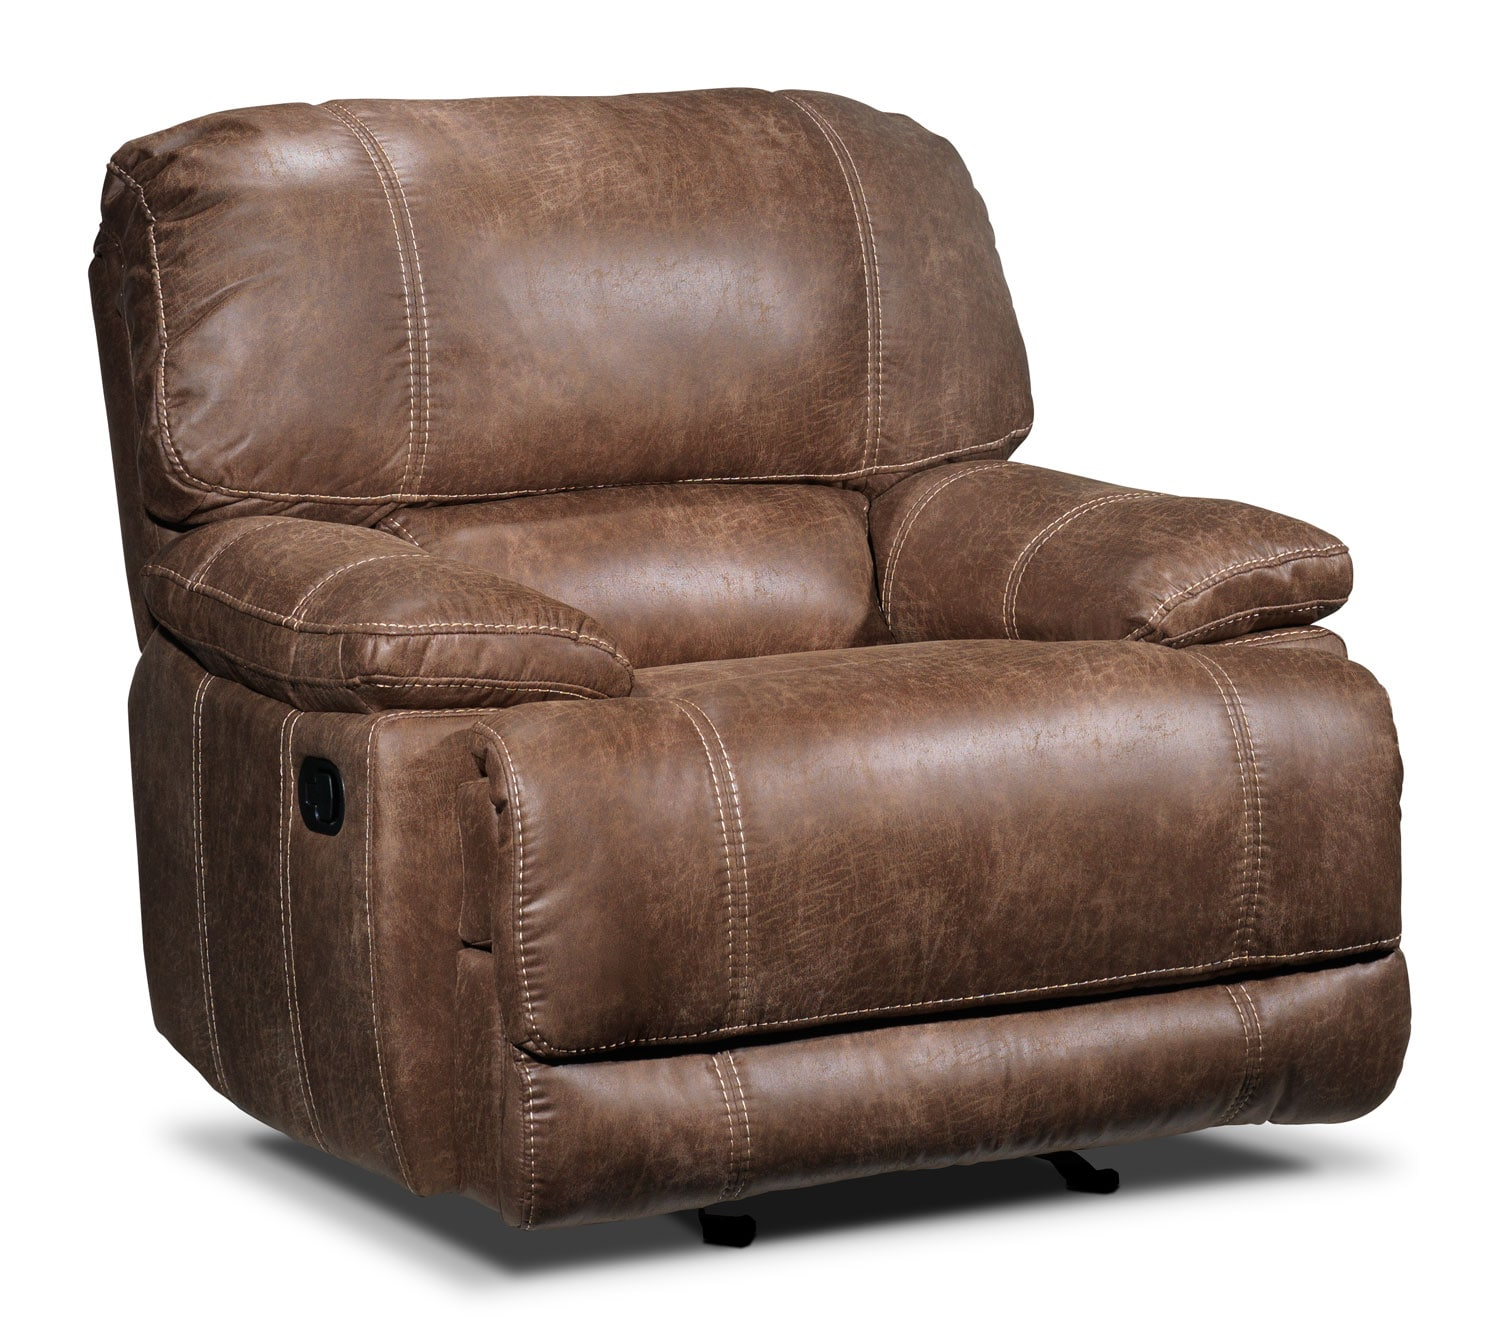 Living Room Furniture - Durango Glider Recliner - Saddle Brown